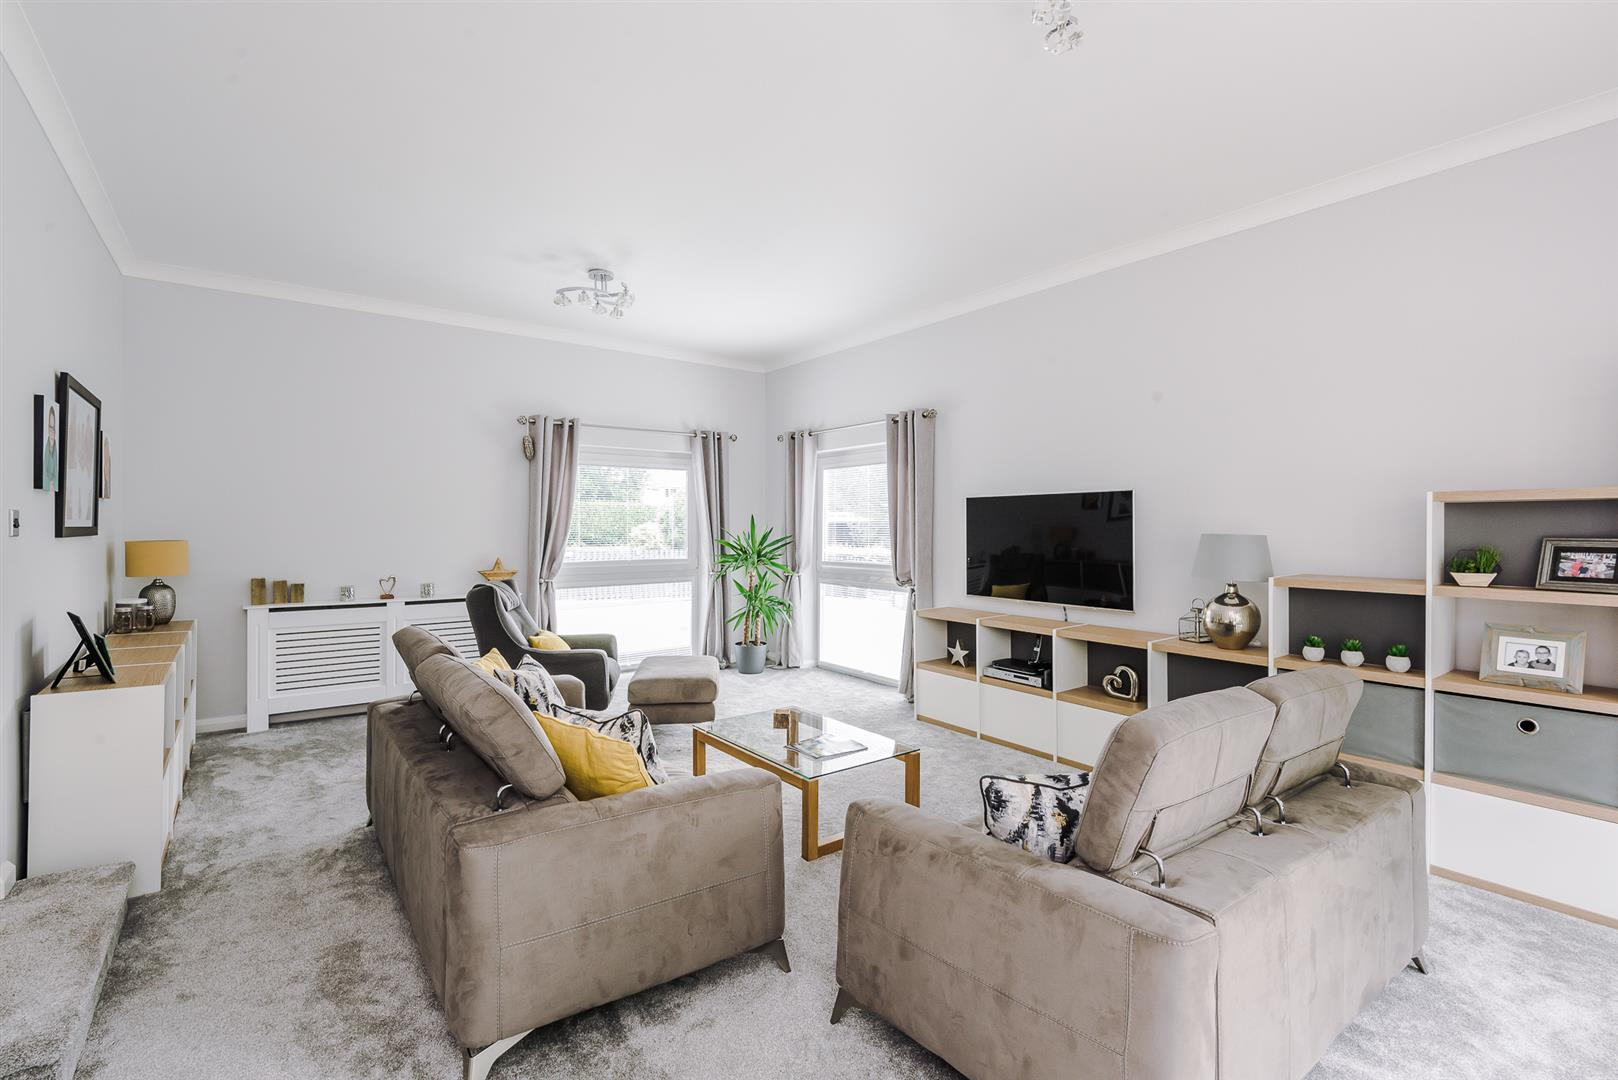 4 bedroom detached house For Sale in Bolton - DSC_6389.jpg.